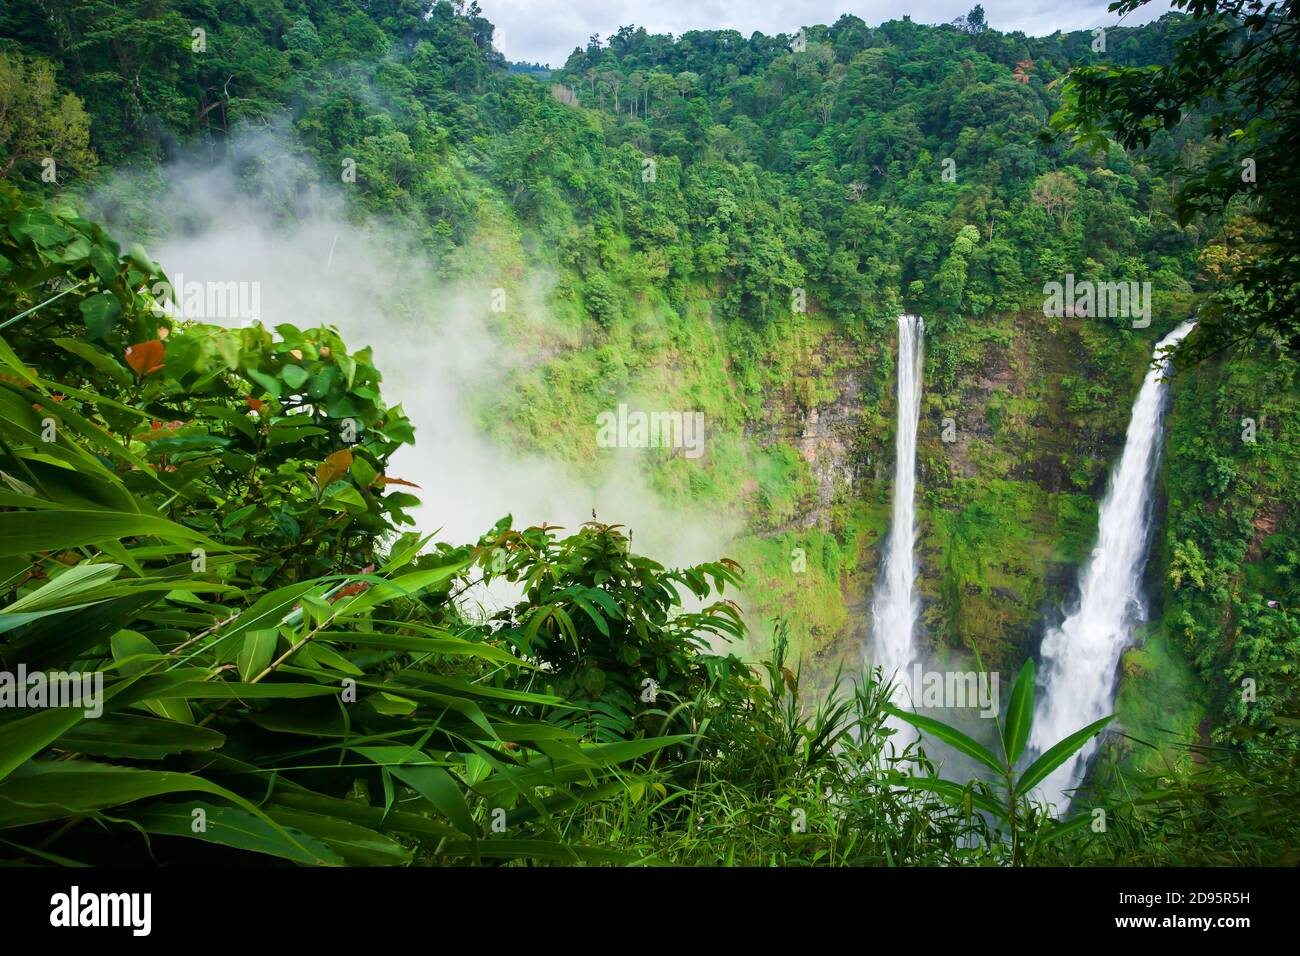 Scenery Tad Fane waterfalls in the morning mist, magical twin waterfall in rain season, tourist attractions in South Laos. Stock Photo